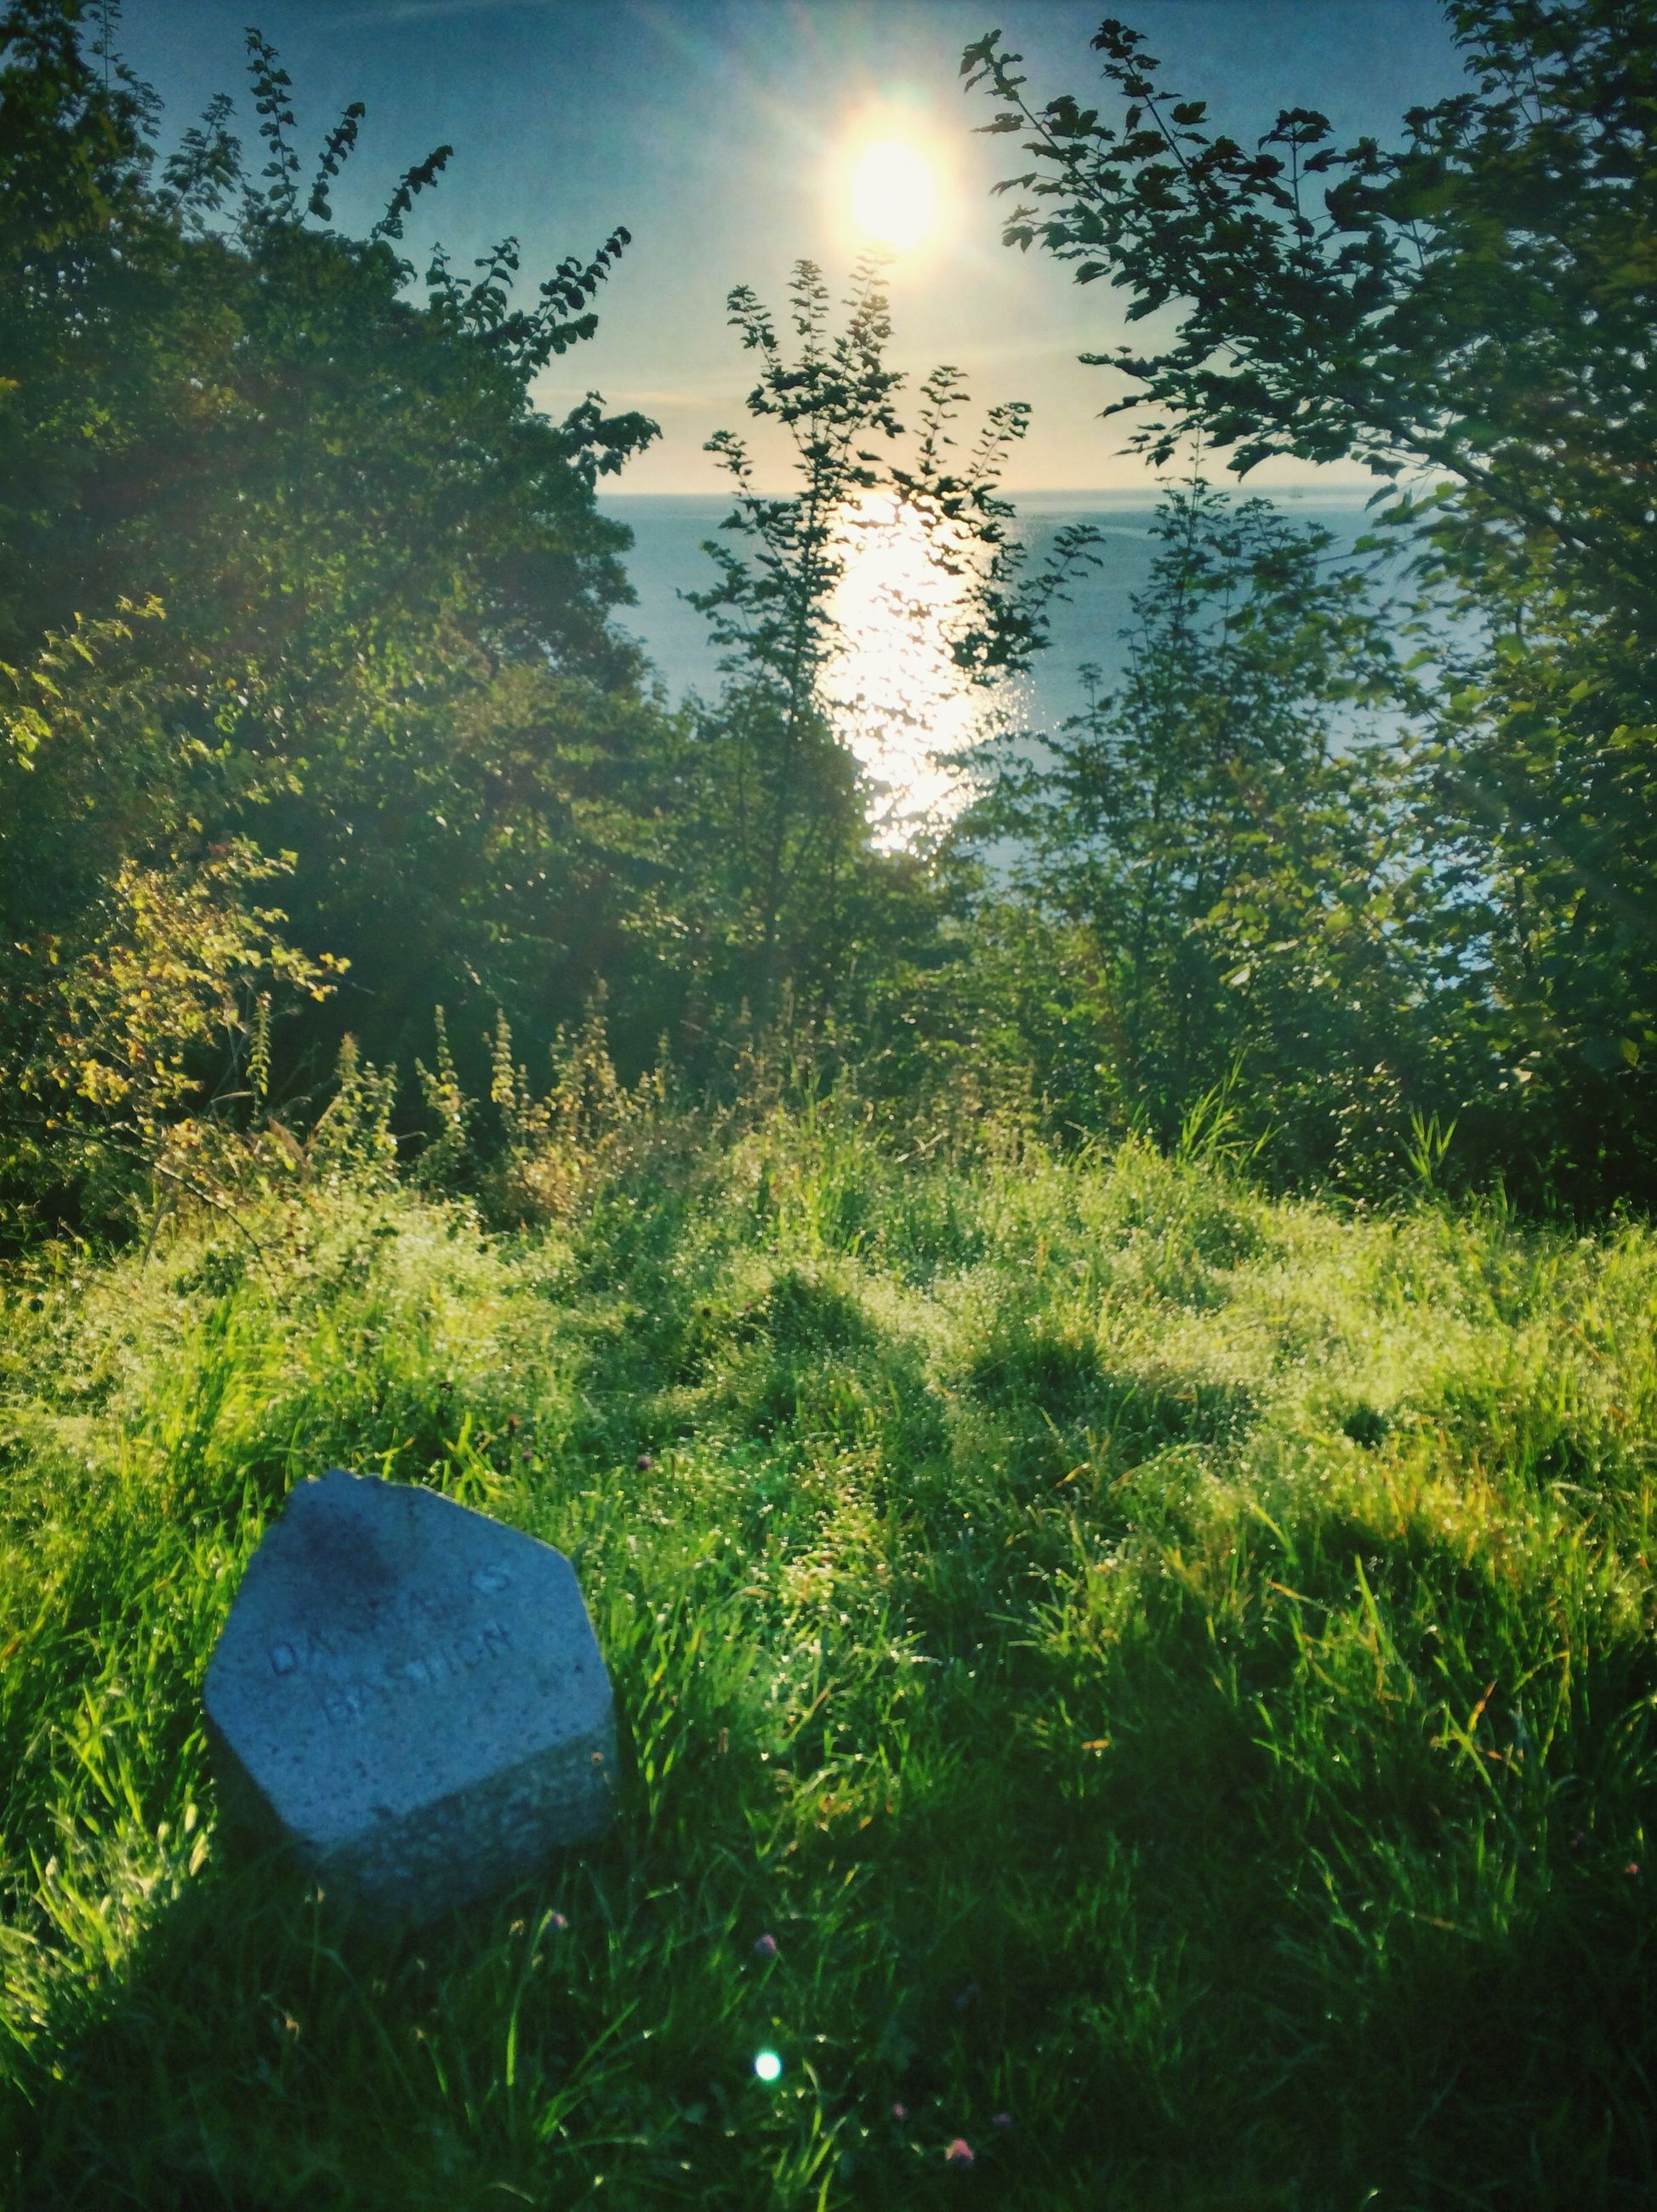 grass, grassy, field, green color, tranquility, sunlight, growth, tree, sun, nature, tranquil scene, beauty in nature, sky, lens flare, landscape, sunbeam, scenics, day, plant, sunny